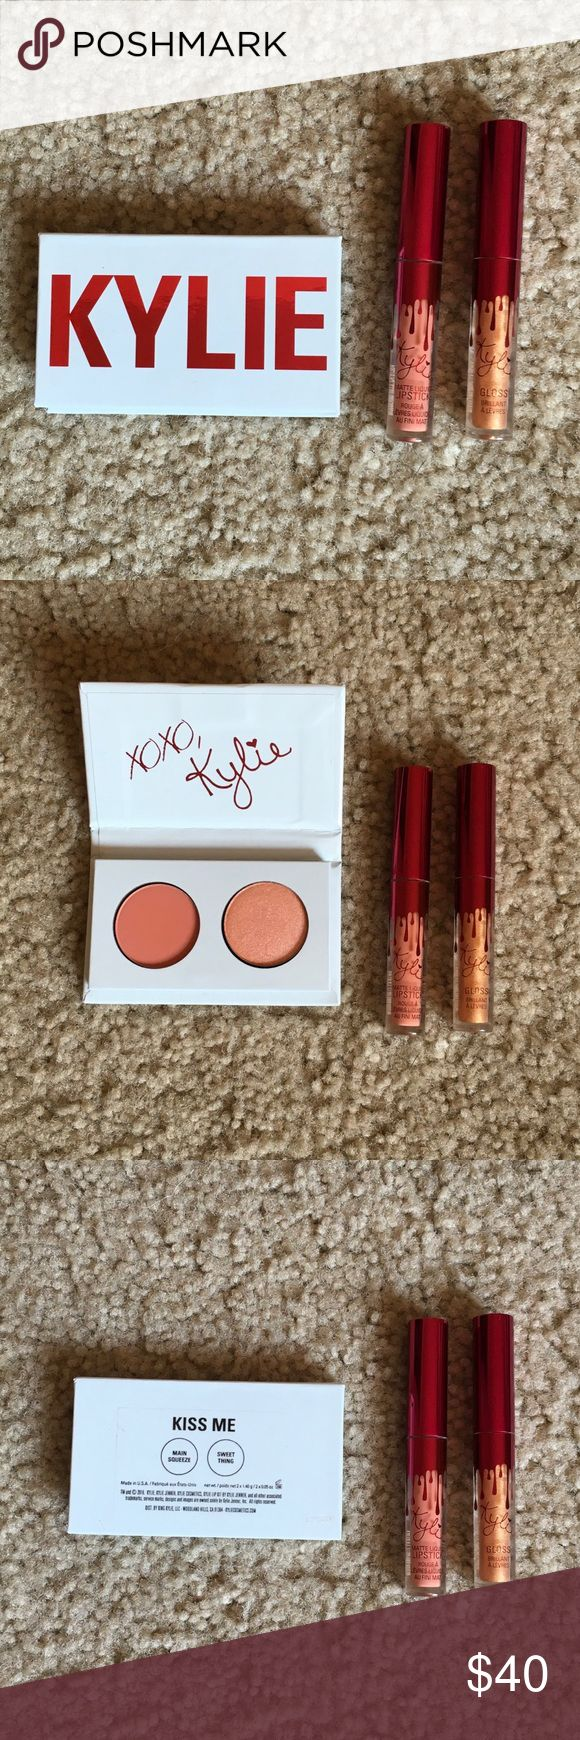 Kylie Valentines Day Kiss Me Mini Kit I bought this on kyliecosmetics.com when I was collecting her products but didn't like the look of the colors in person. I don't have the original box any more but these products have never been used. This listing is for the Kiss Me Mini eyeshadow kit (includes Main Squeeze and Sweet Thing), Mini Poppin Gloss, and mini Dirty Peach. Kylie Cosmetics Makeup Lipstick